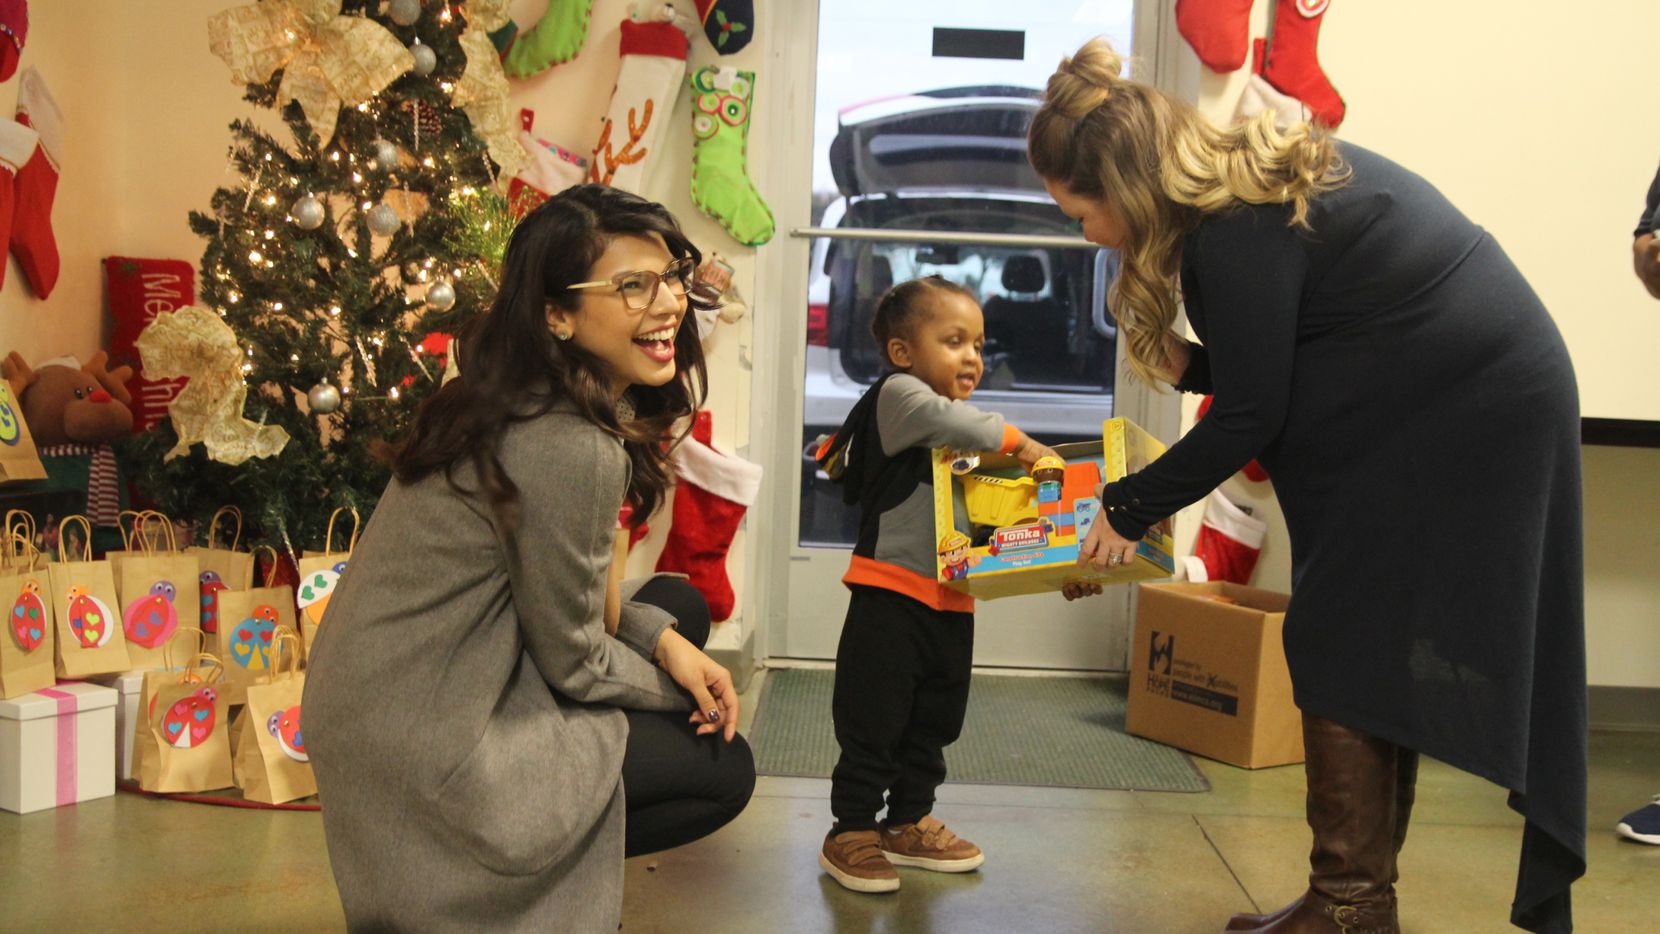 City Credit Union hosted a toy drive to benefit Buckner International. Here, employees deliver toys to Buckner's Humanitarian Center in Mesquite. (Photo from City Credit Union..